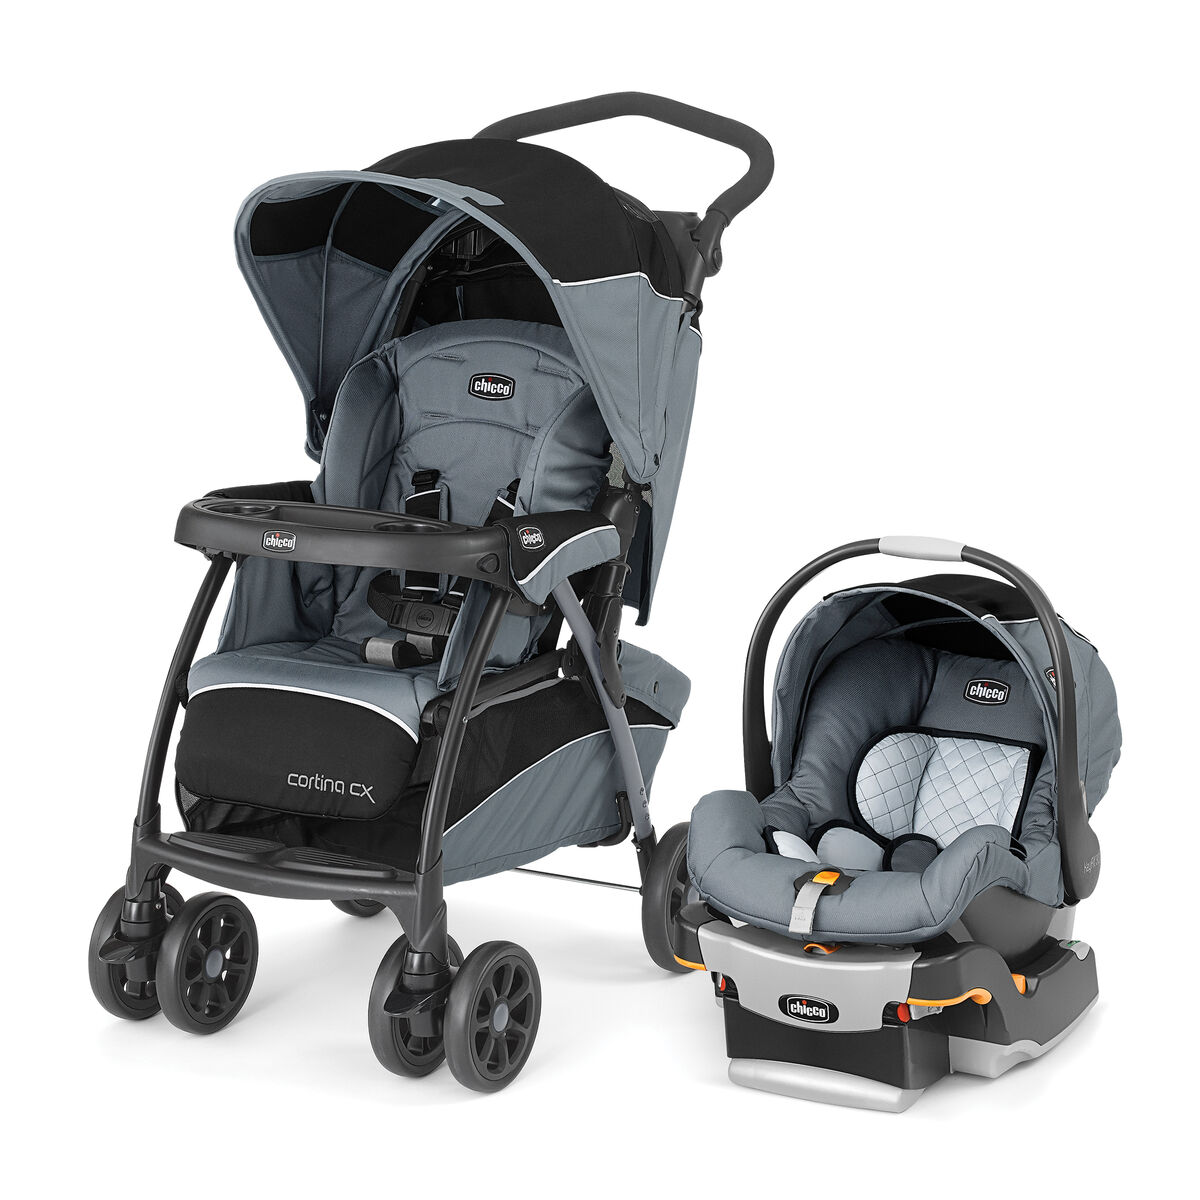 Chicco Today Travel System Video